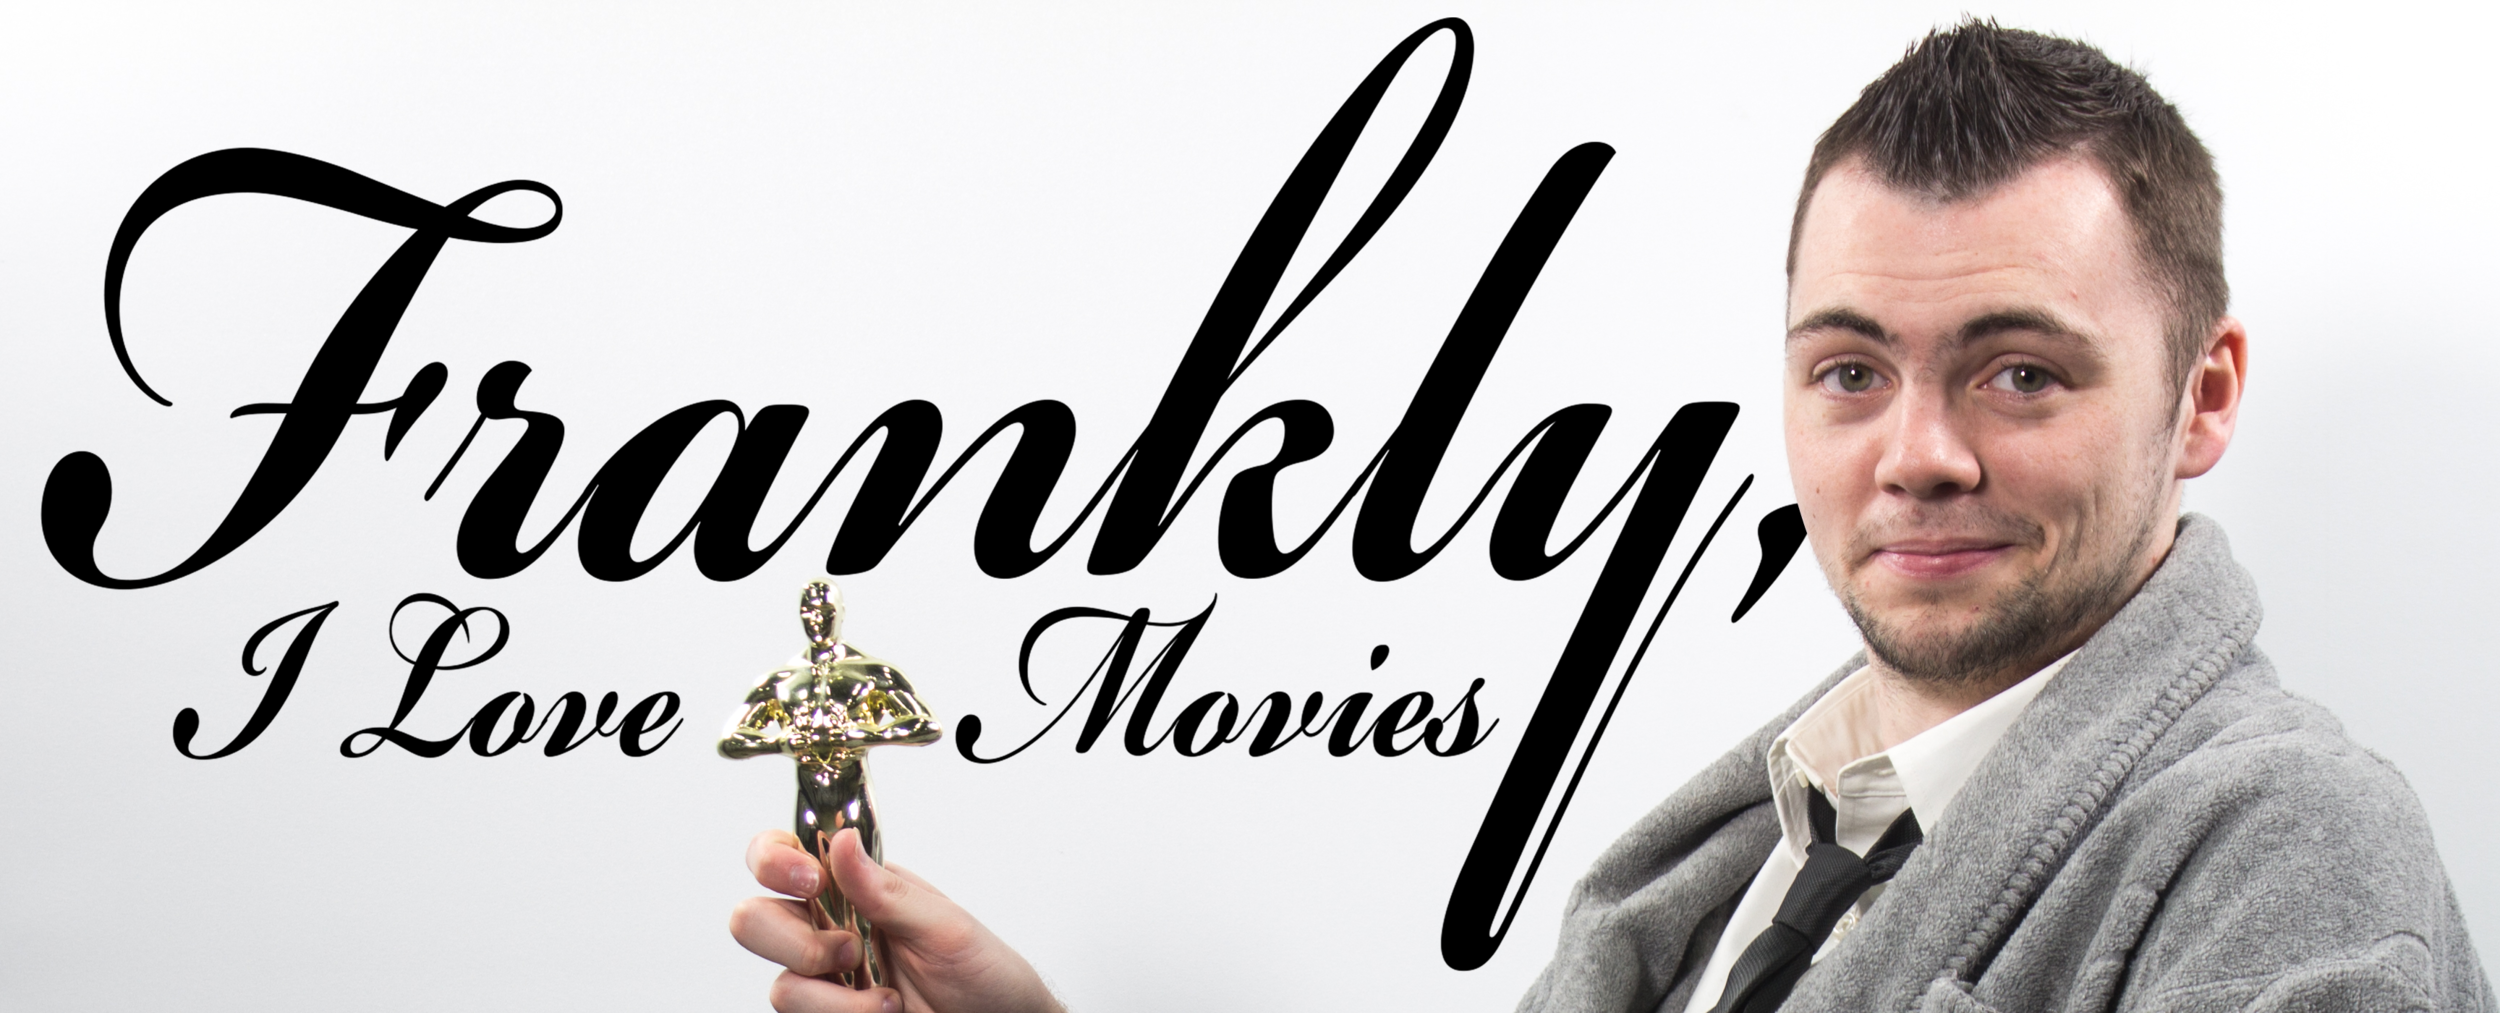 Season 1 — Frankly, I Love Movies — Orion Valley Productions